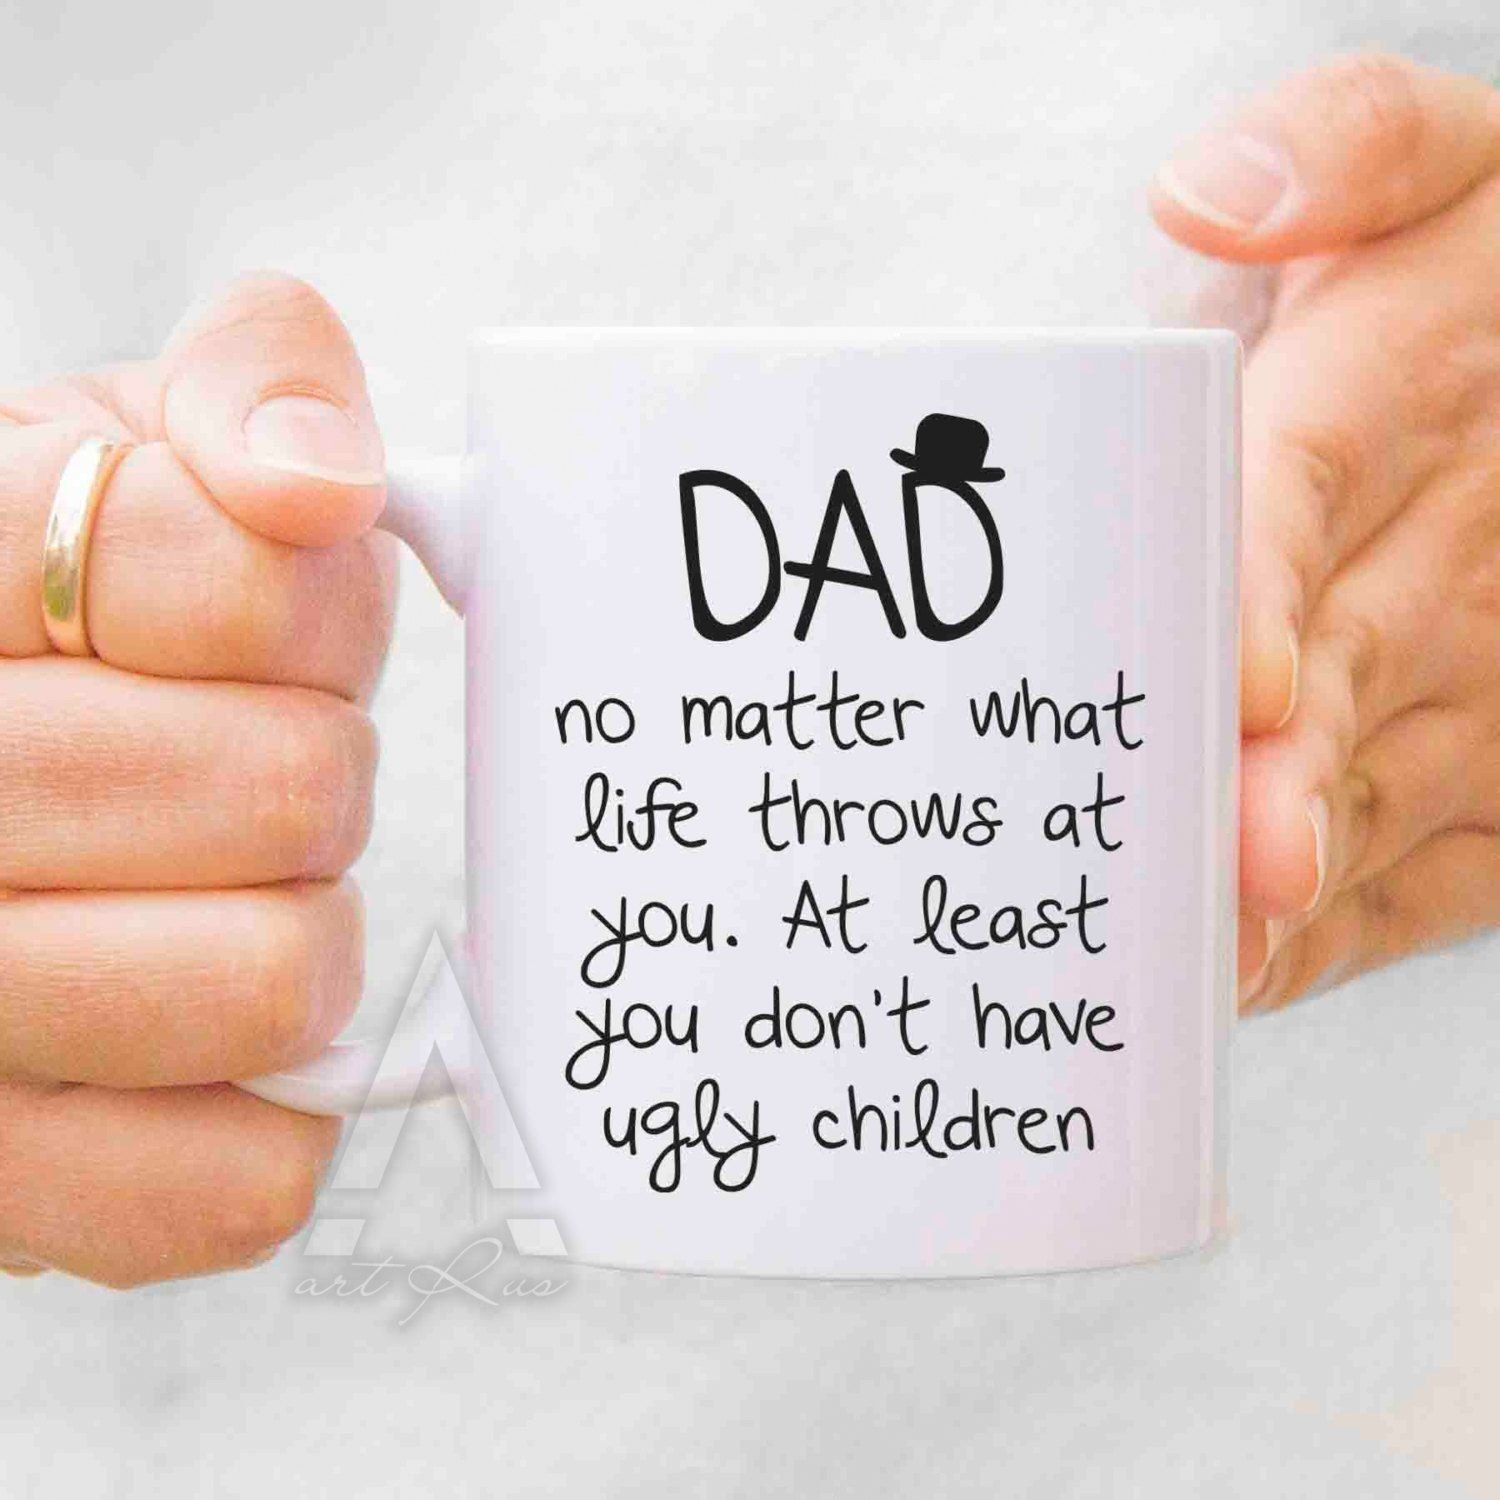 10 attractive christmas ideas for dad from daughter dad birthday gift fathers day gift from daughter